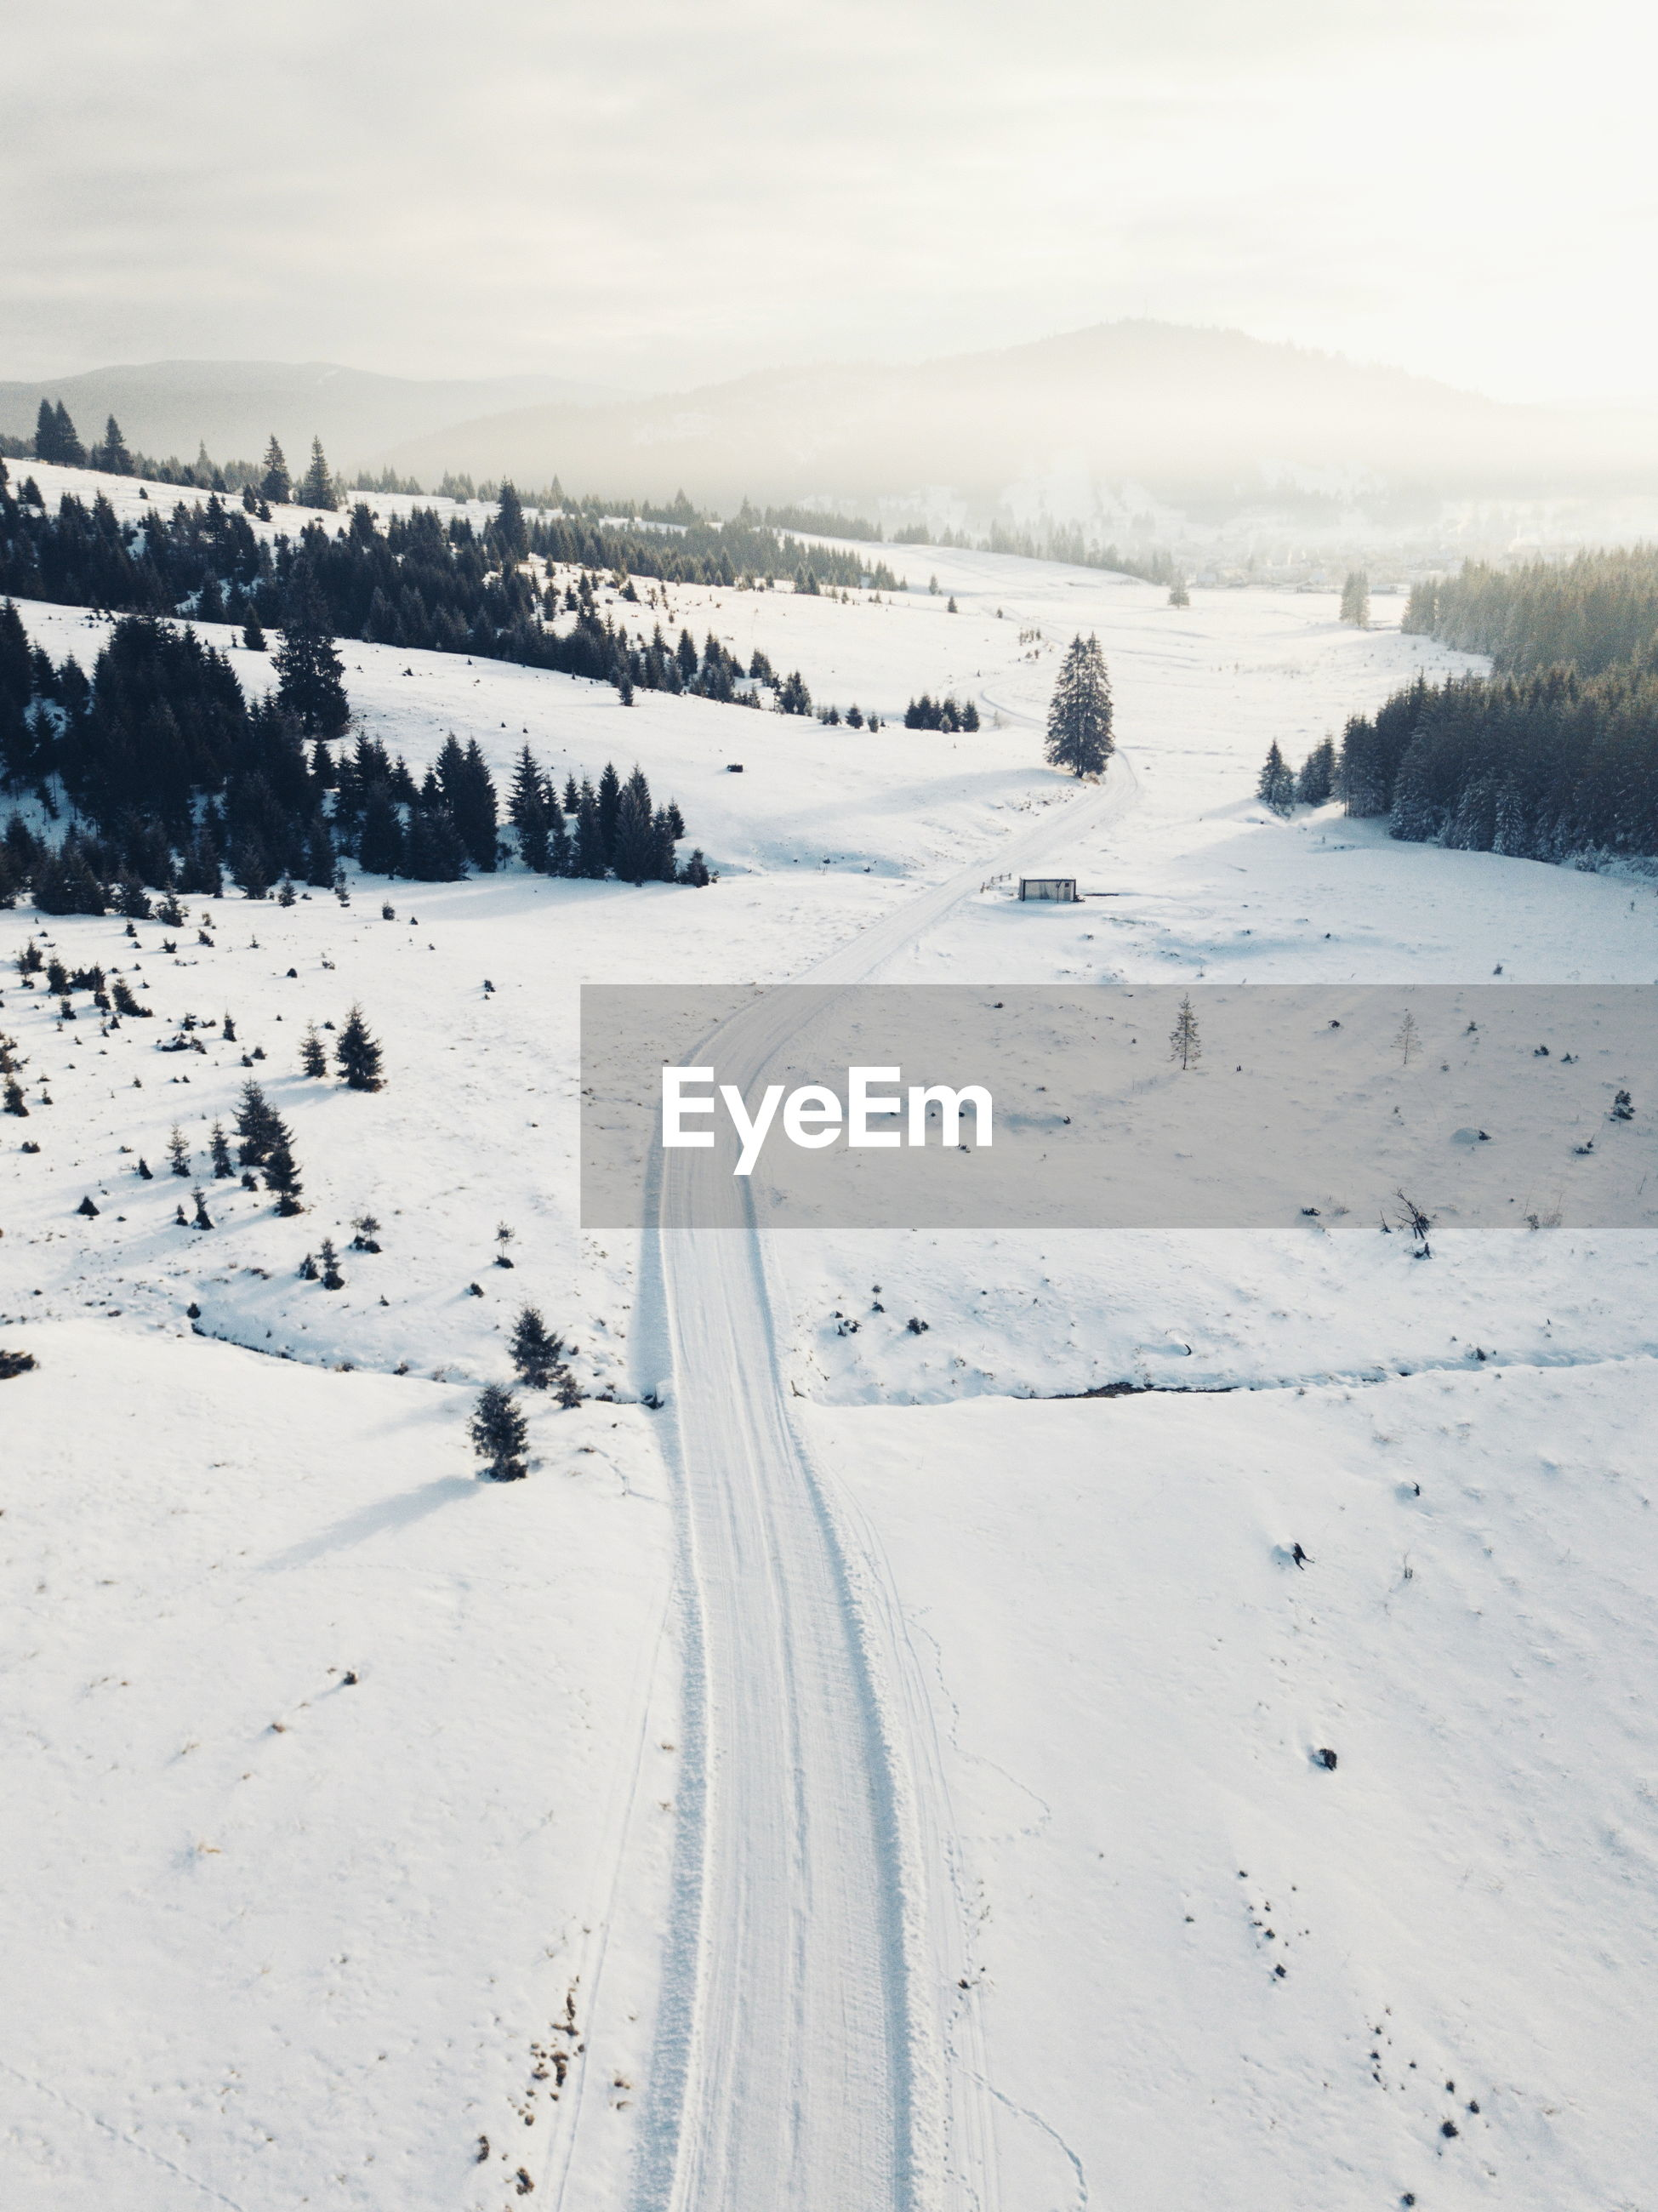 SCENIC VIEW OF SNOW LANDSCAPE AGAINST SKY